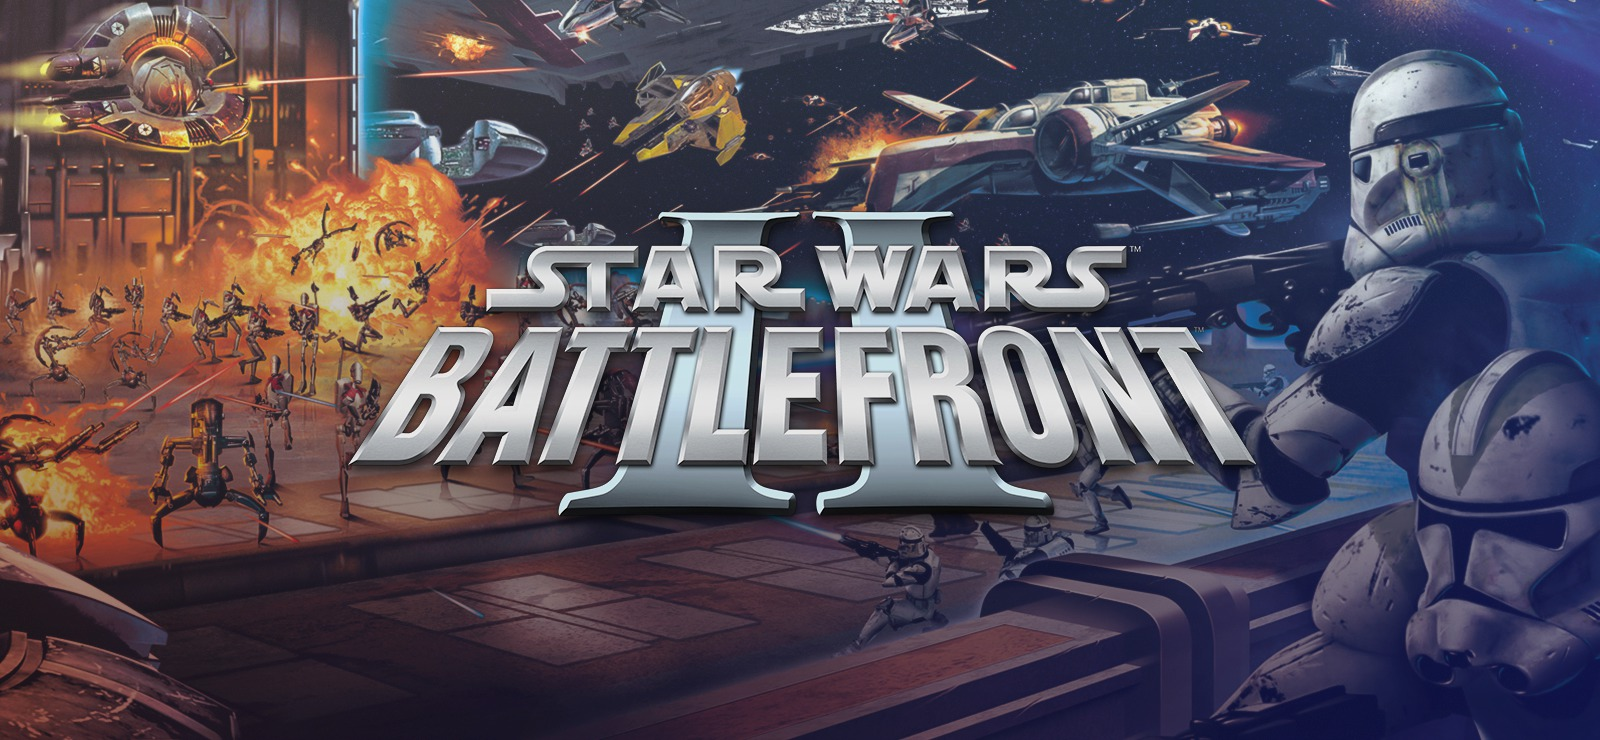 Win 1 of 2 keys for Battlefront 2 (2005 ed.) for next DBH!